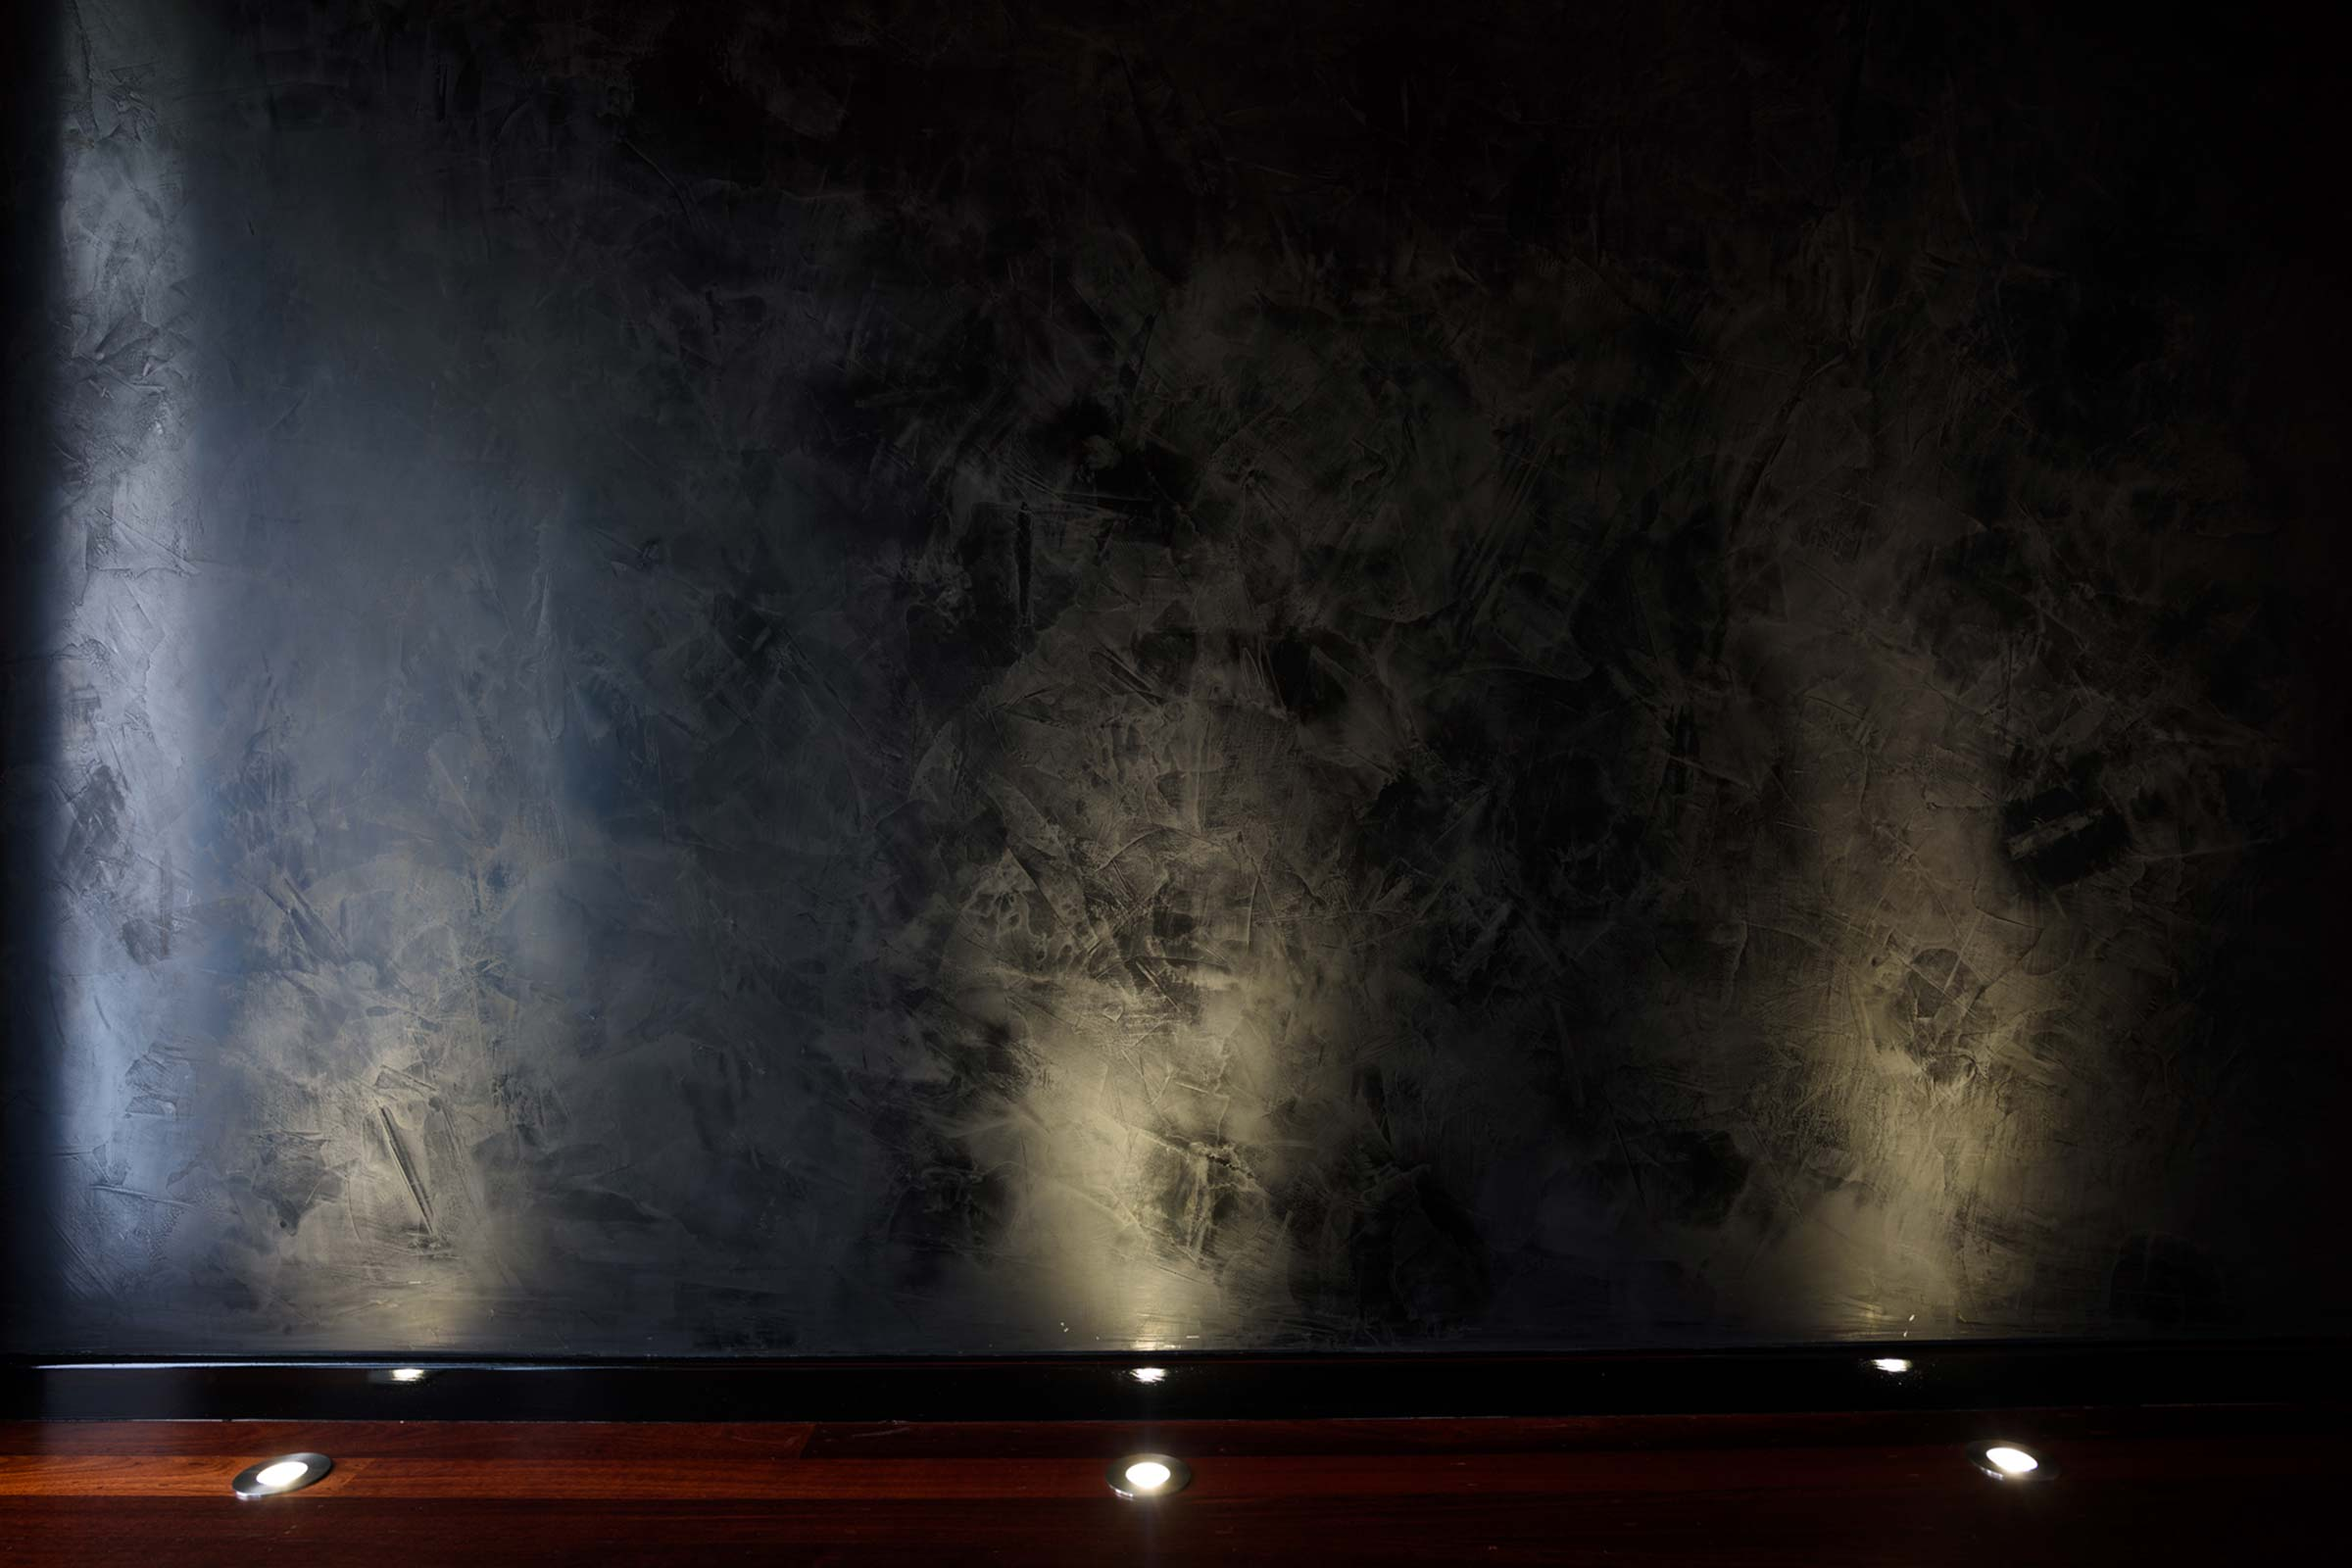 Dulux Acratex Venetian Plaster 02 Cafe Feature Wall Black